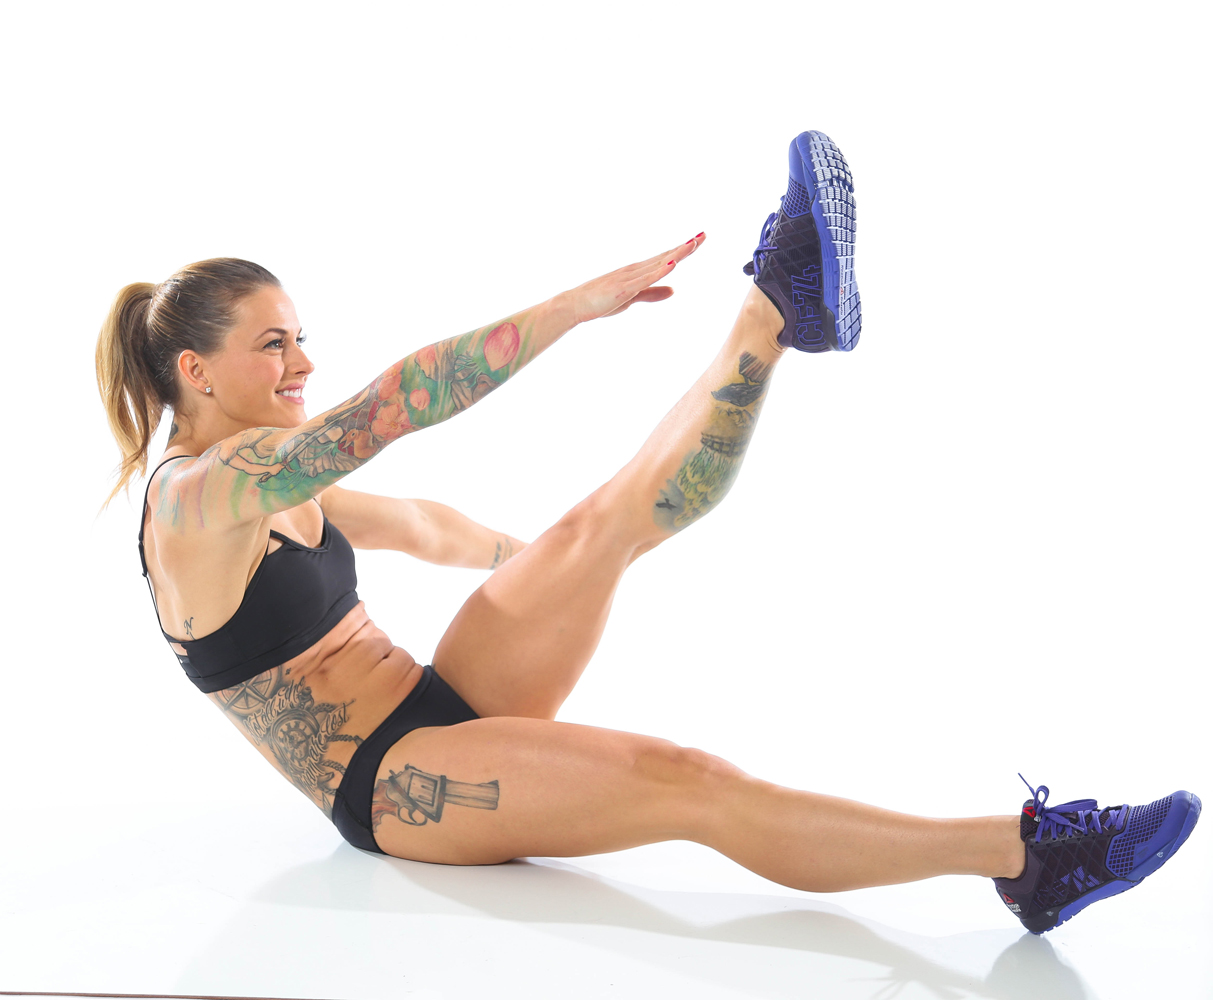 From The Badass Body Diet, by Christmas Abbott: Single Leg Toe Touch, Part 3